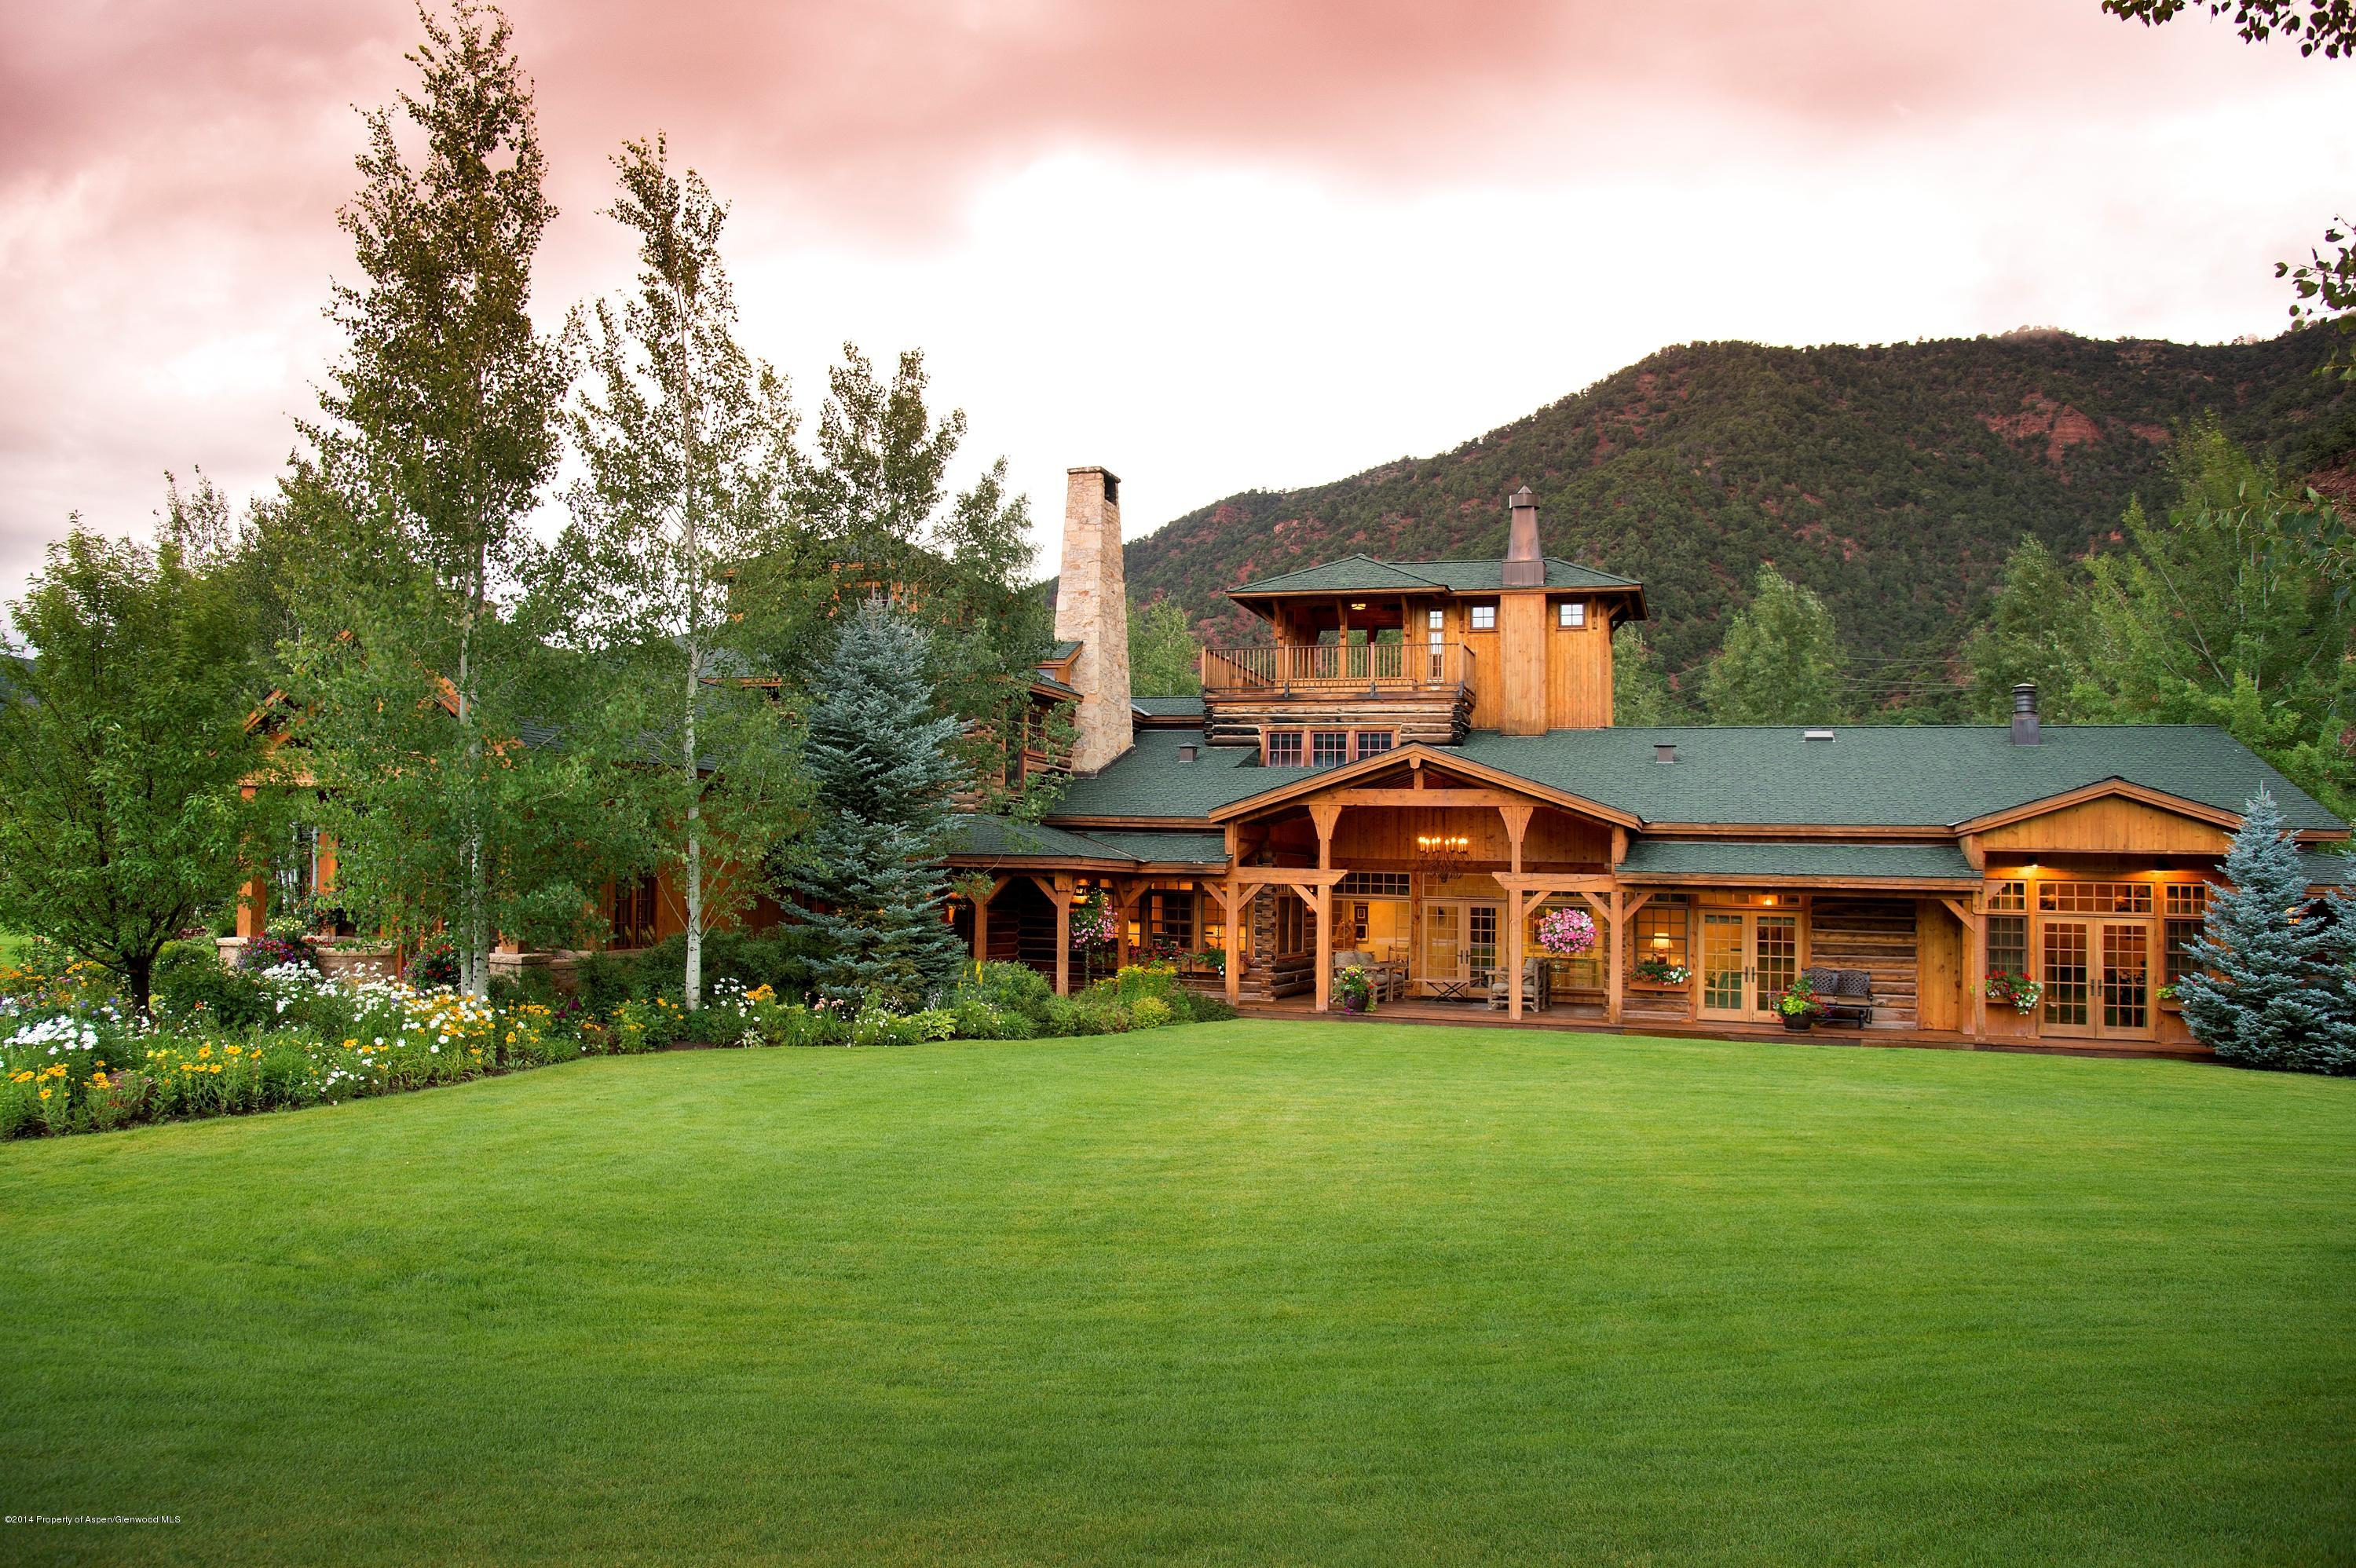 MLS# 135595 - 36 - 50 E River Ranch Road, Snowmass, CO 81654